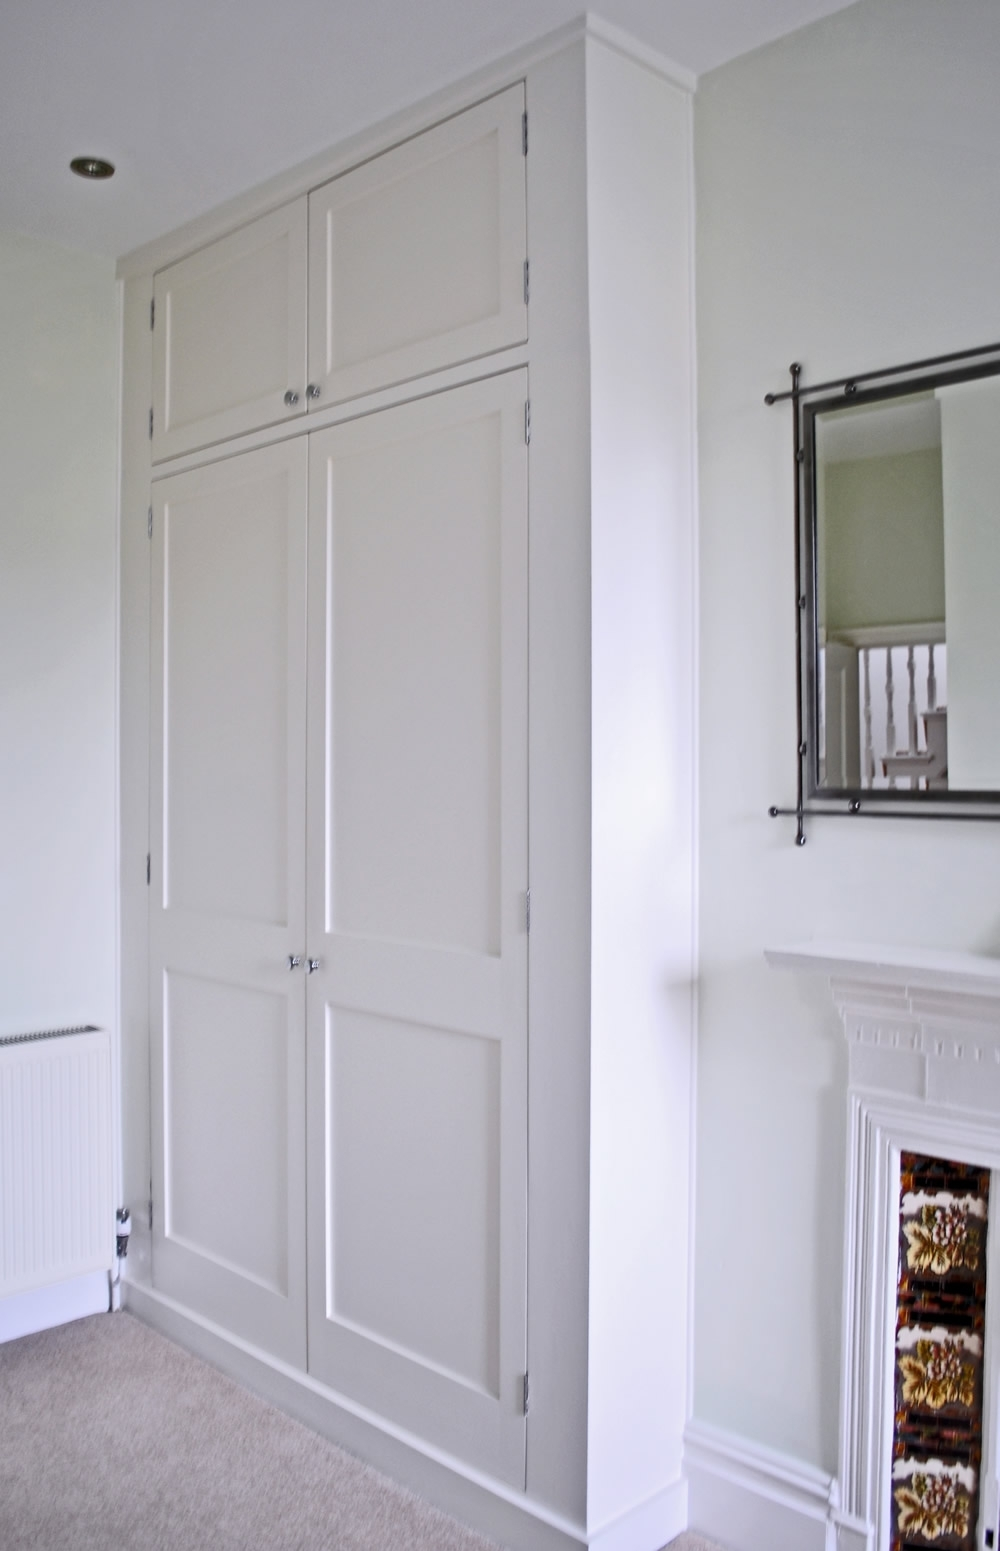 Alcove Wardrobes Regarding Latest Bespoke Fitted Wardrobes And Cupboards (View 2 of 15)